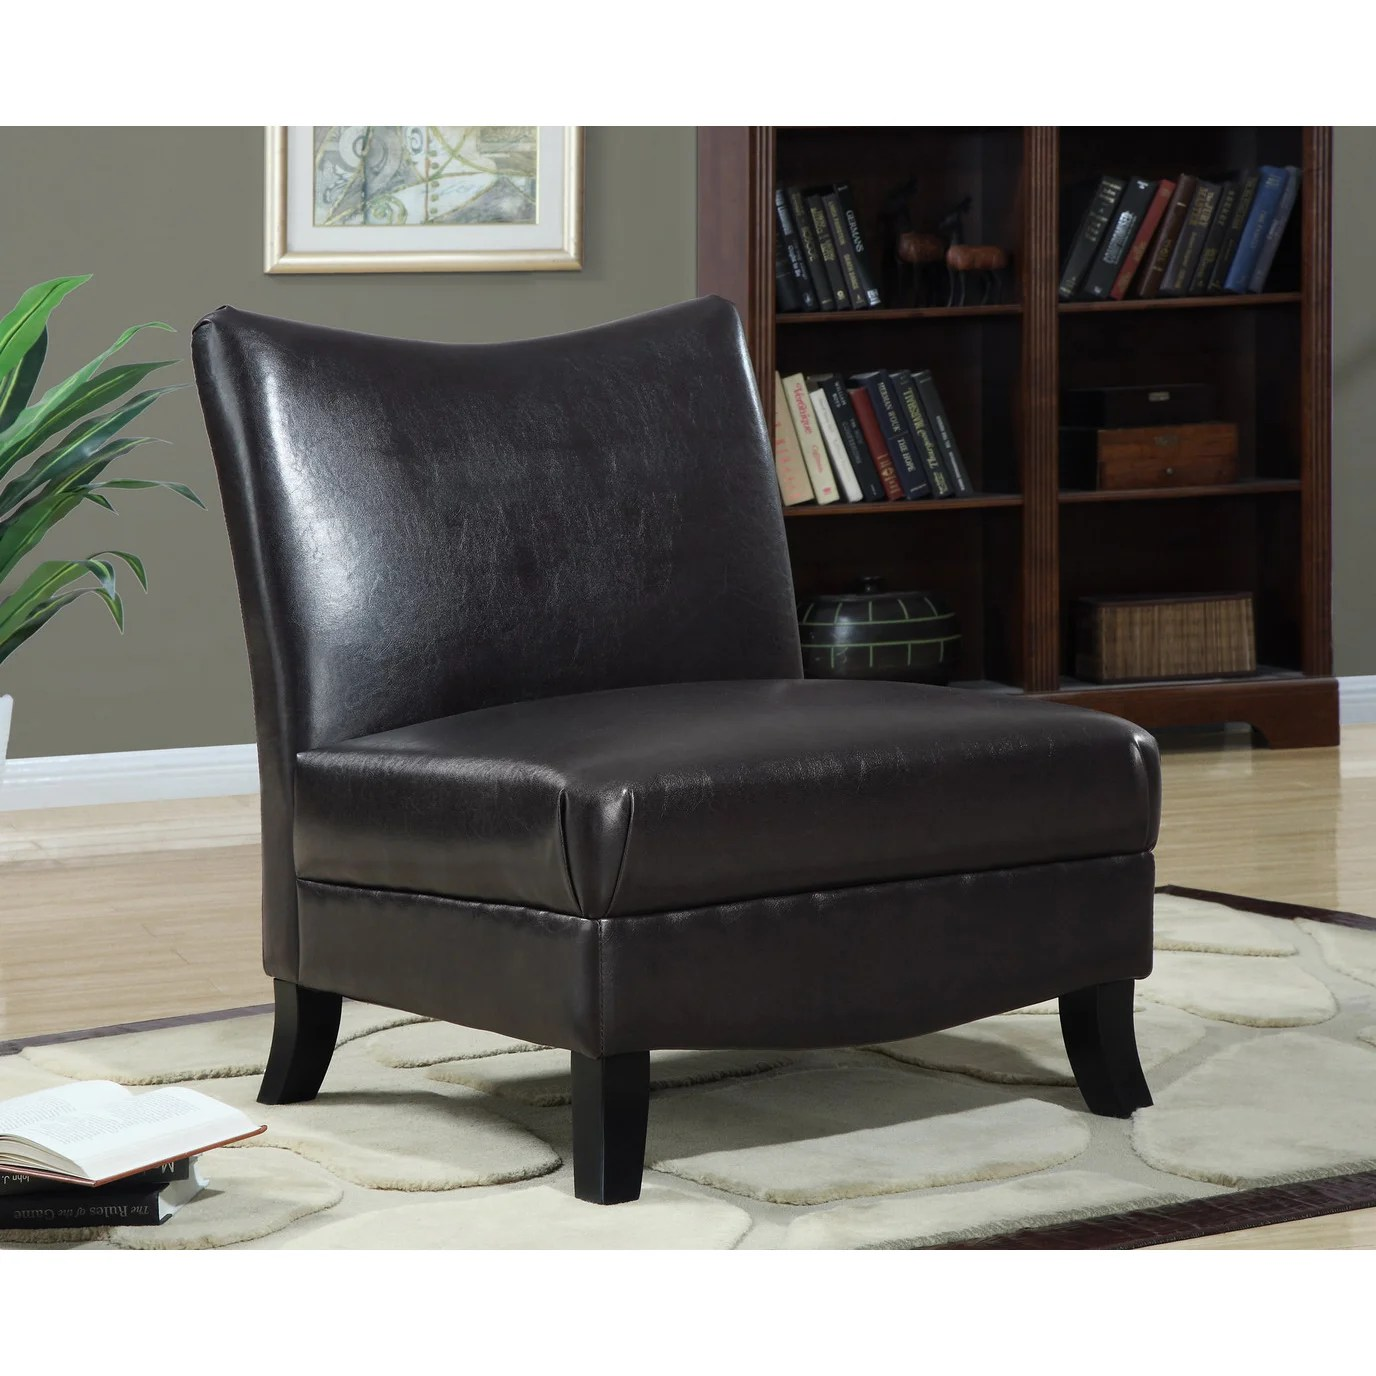 baxton studio modern leather accent chair outdoor seat cushions dark brown look free shipping today